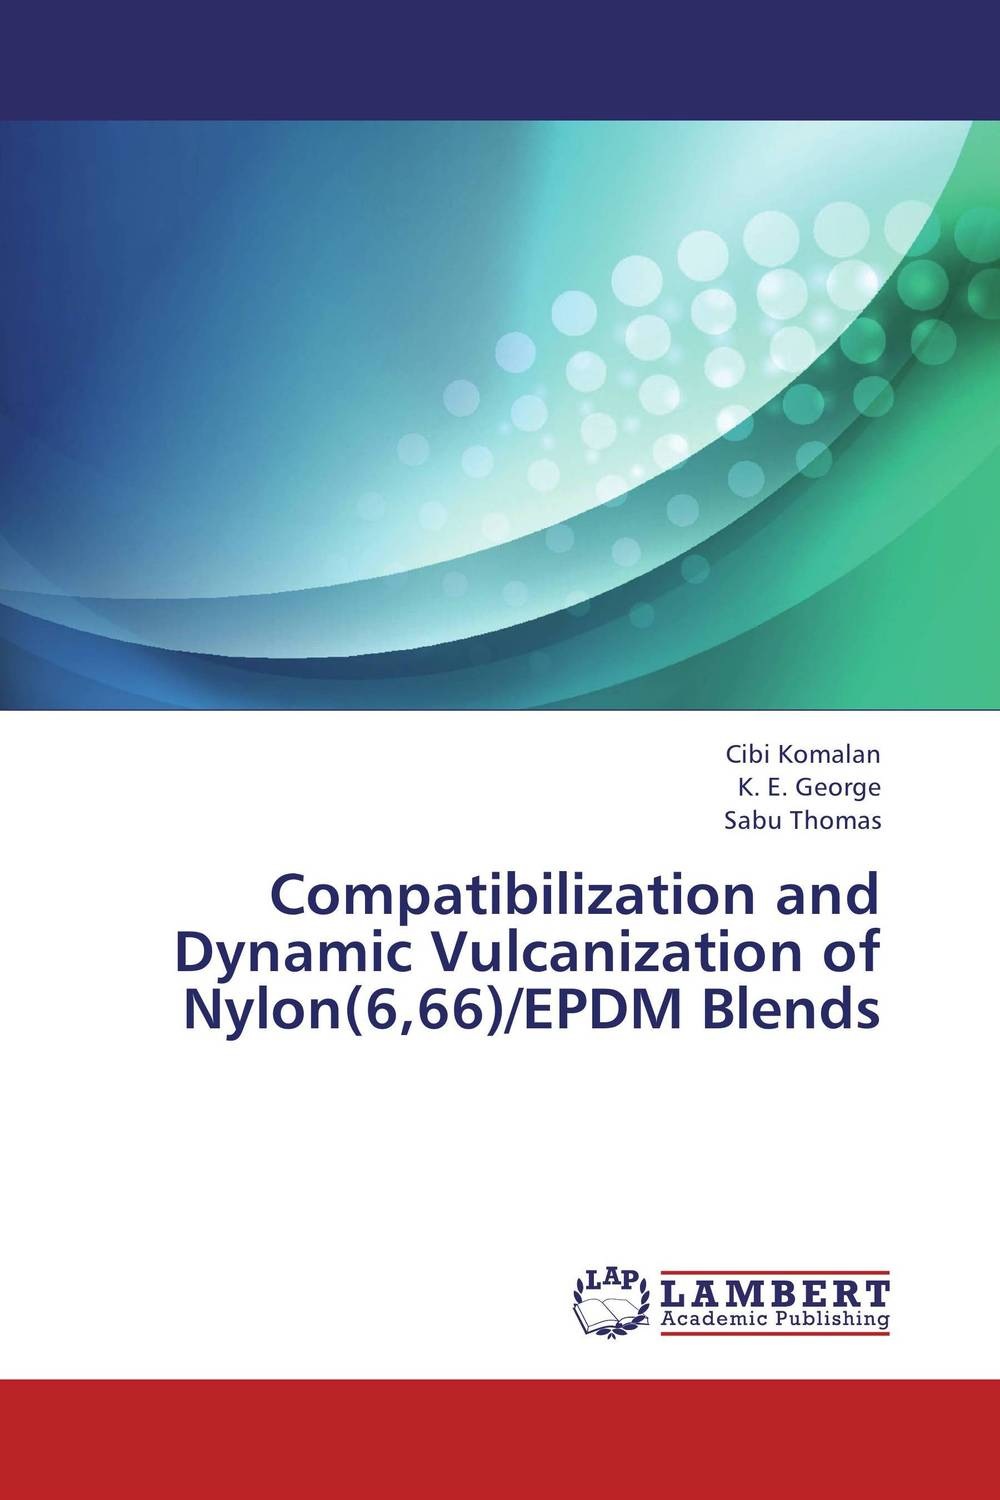 Compatibilization and Dynamic Vulcanization of Nylon(6,66)/EPDM Blends